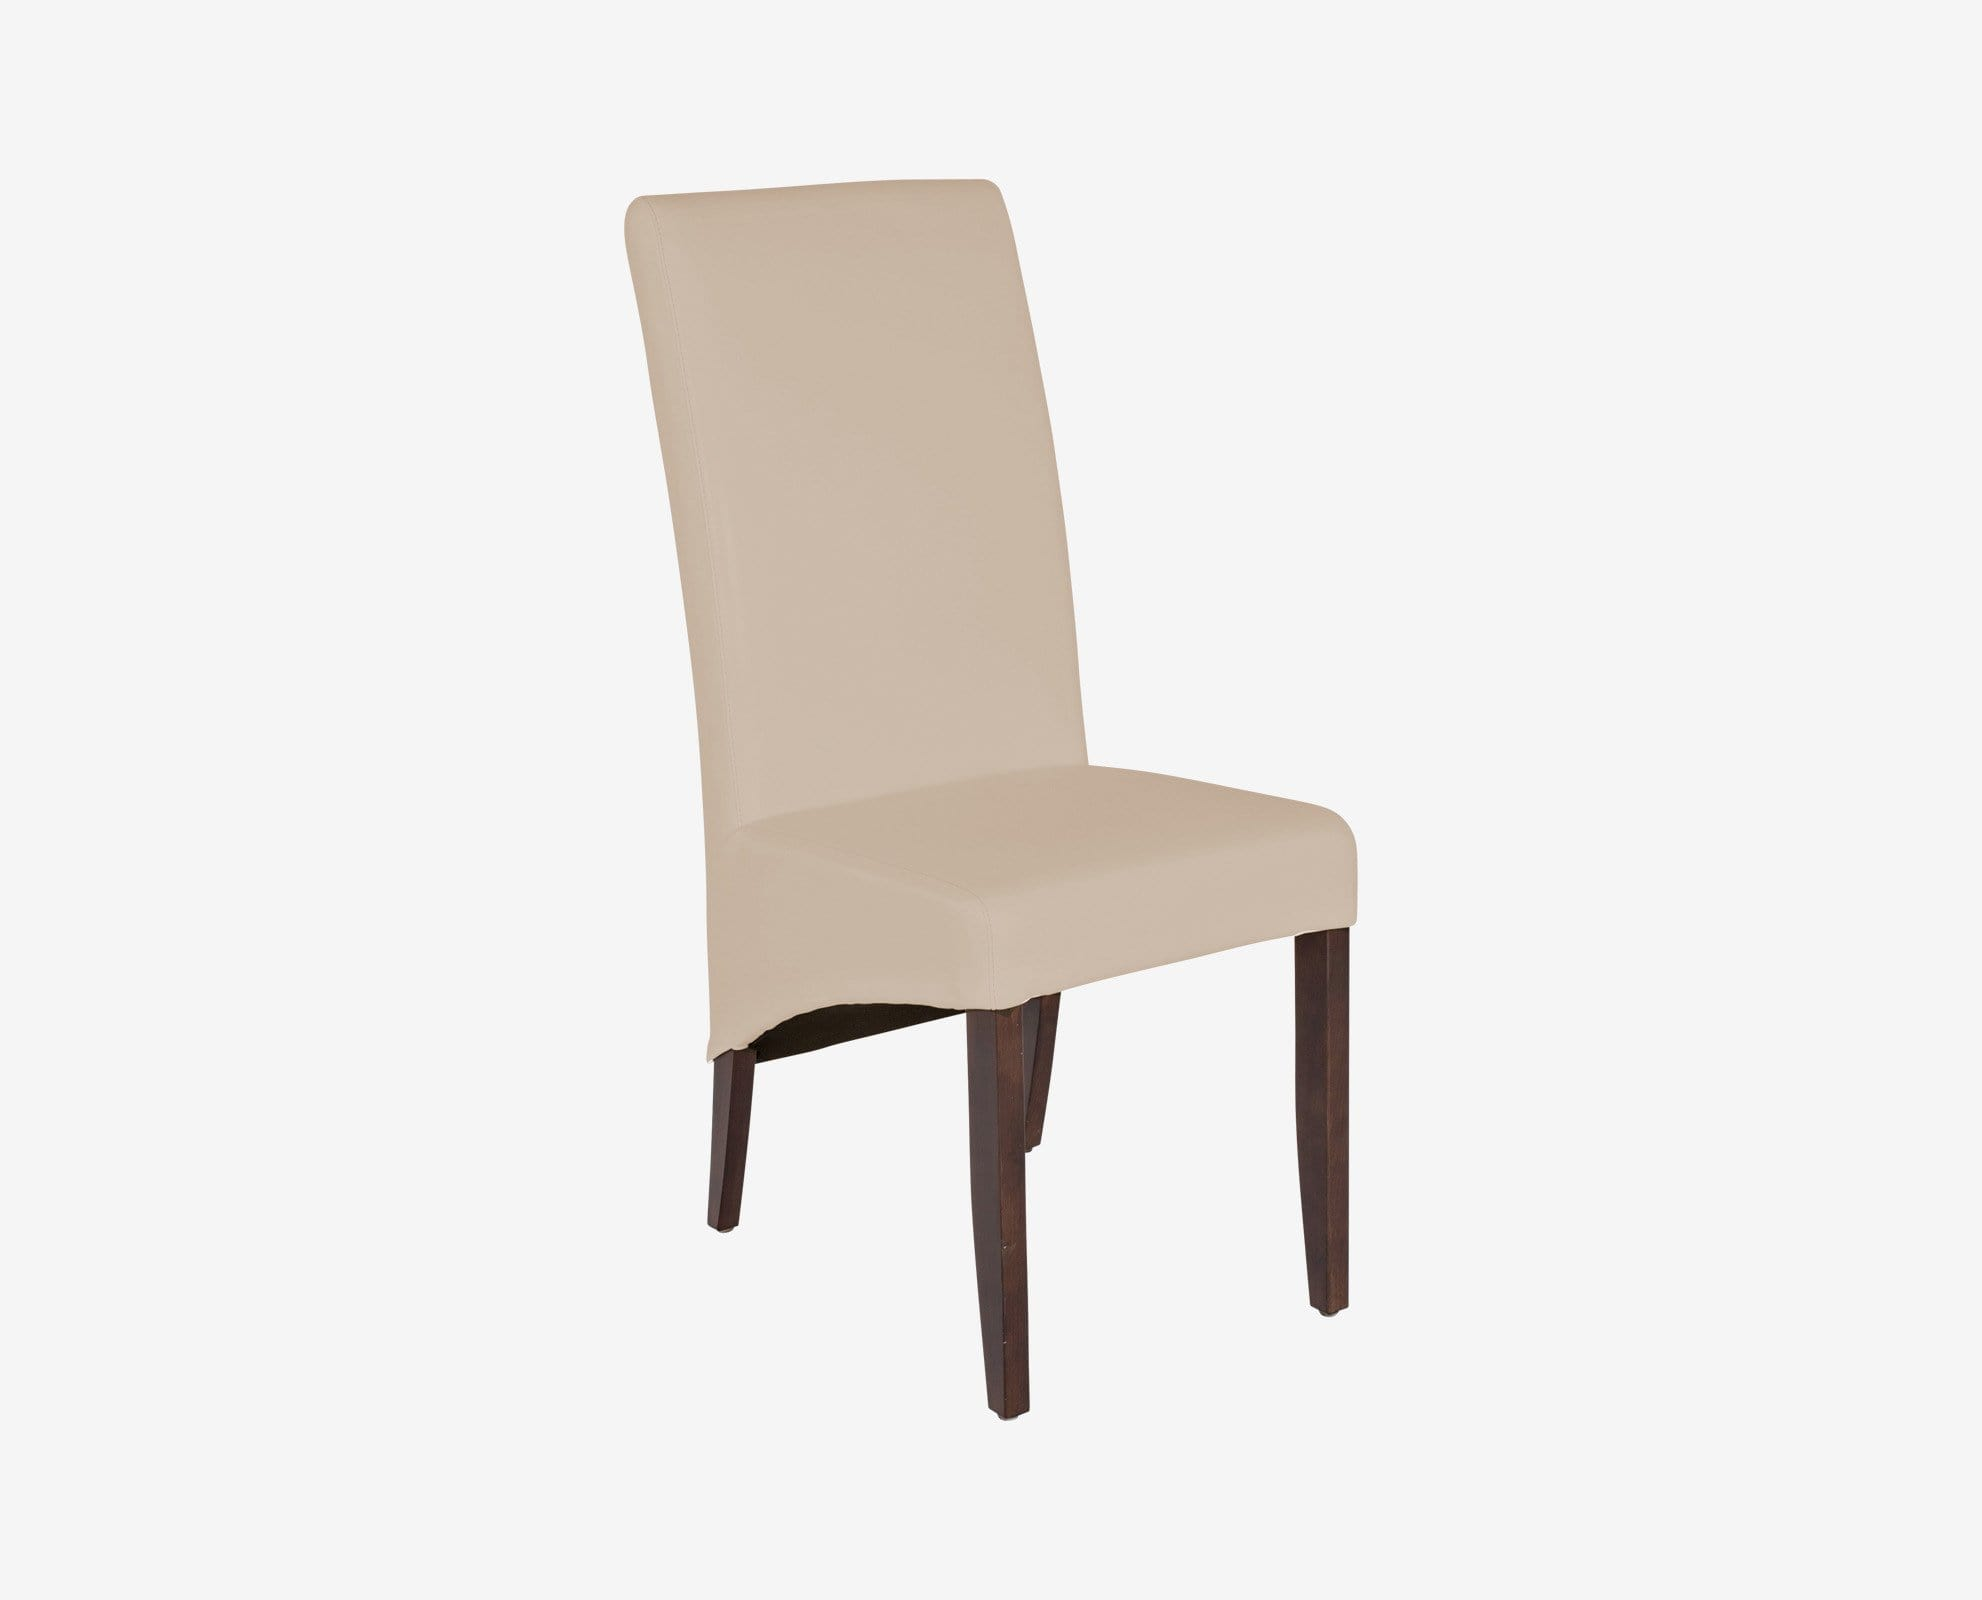 Tailored modern dining chair